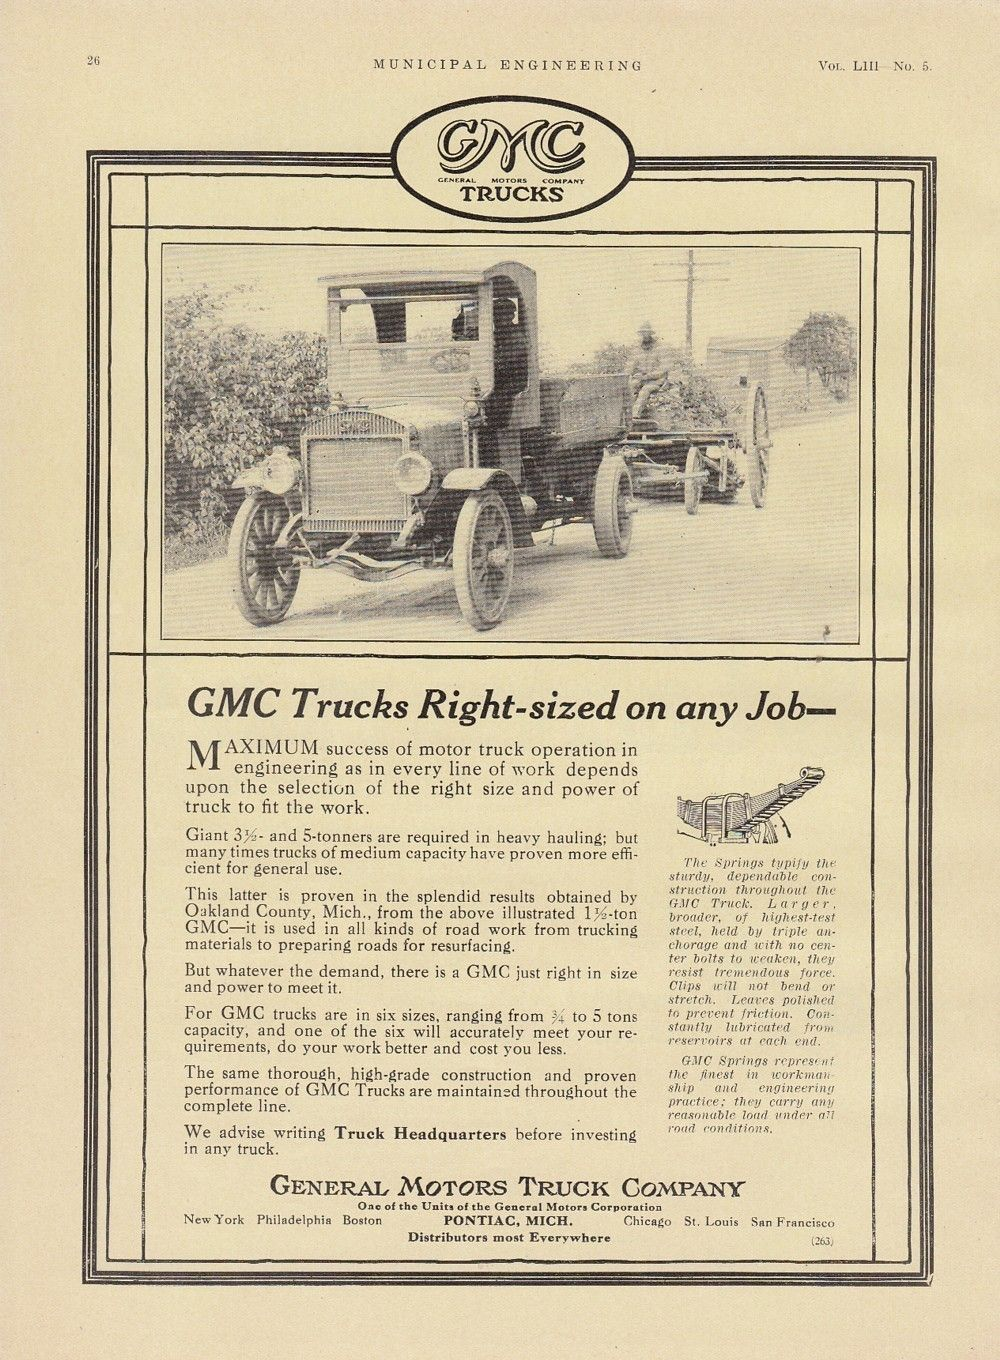 1917 General Motors Truck Co Pontiac Mi Ad Gmc Trucks Right Sized